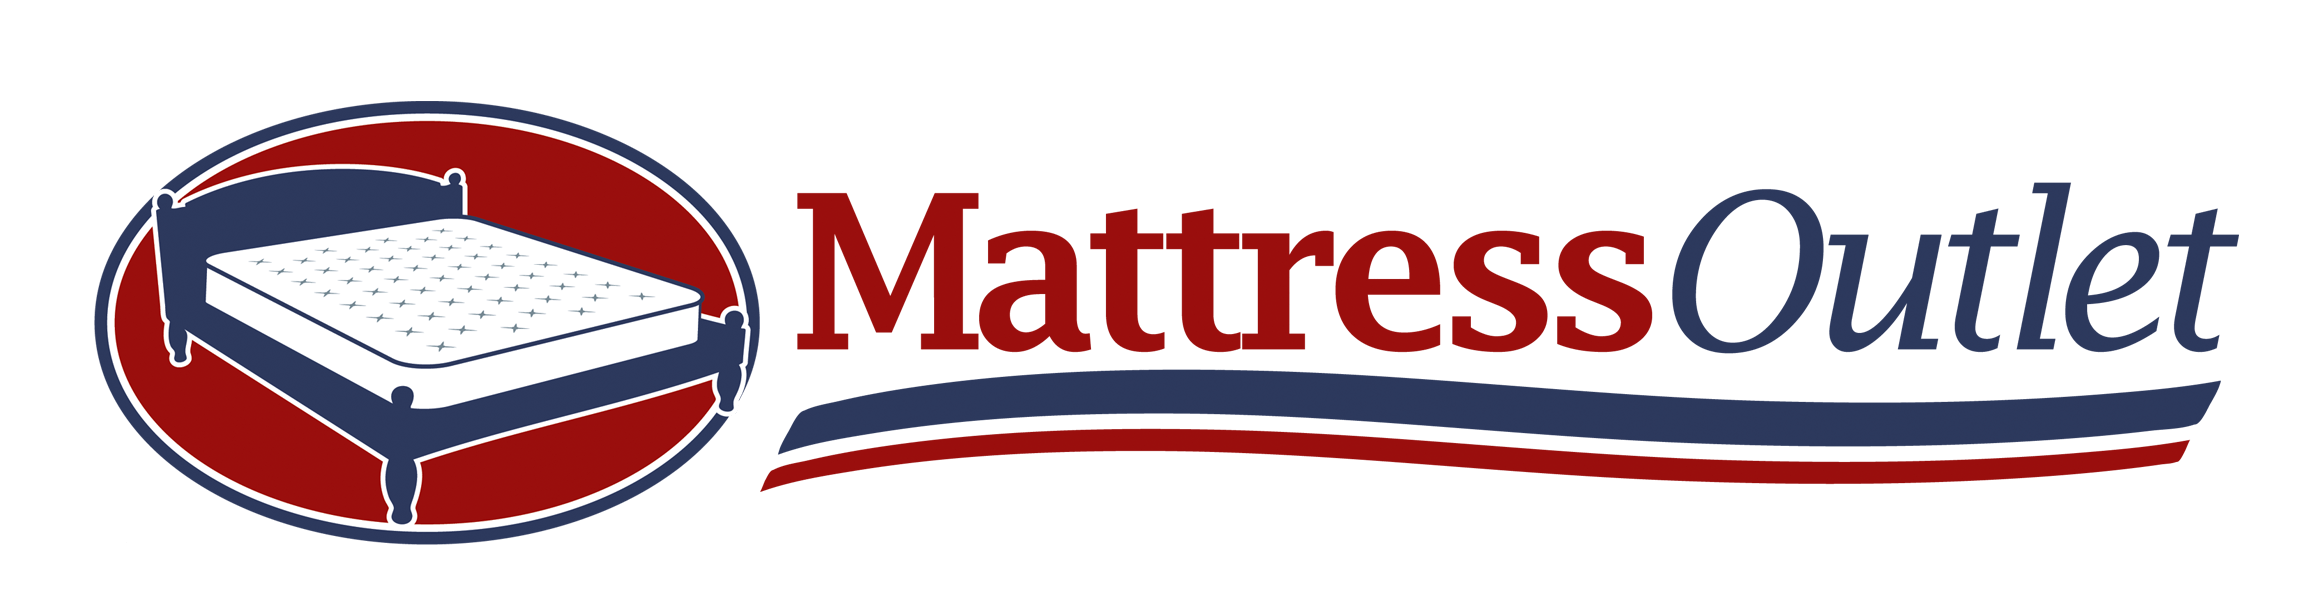 Mattress Outlet Logo